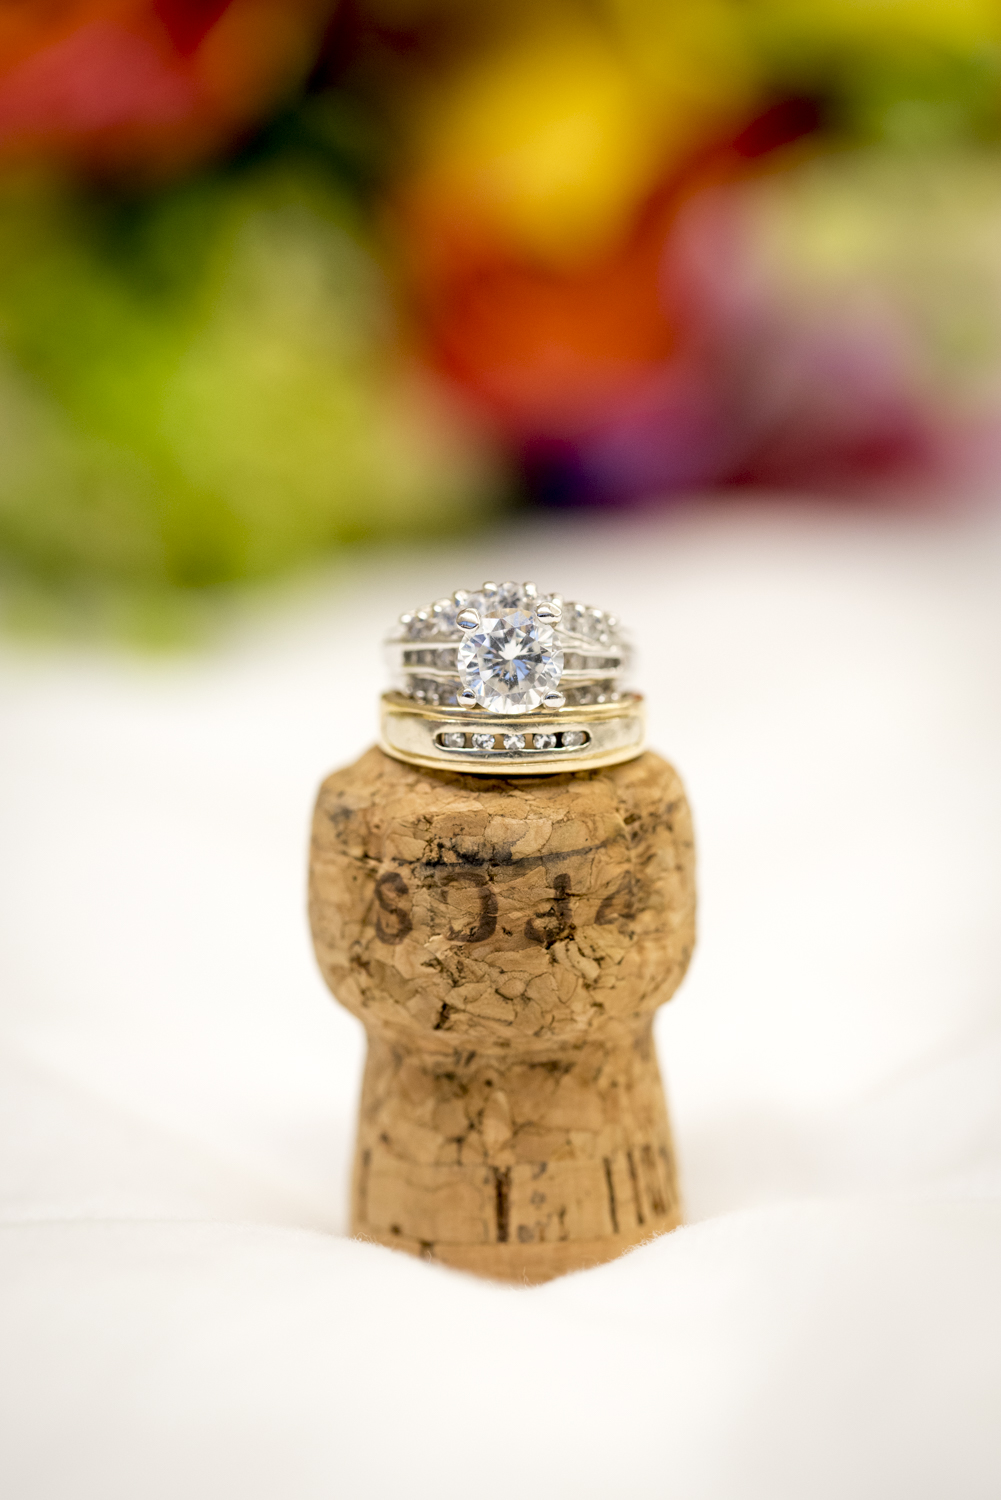 Rings_Champagne_Cork_SGroff